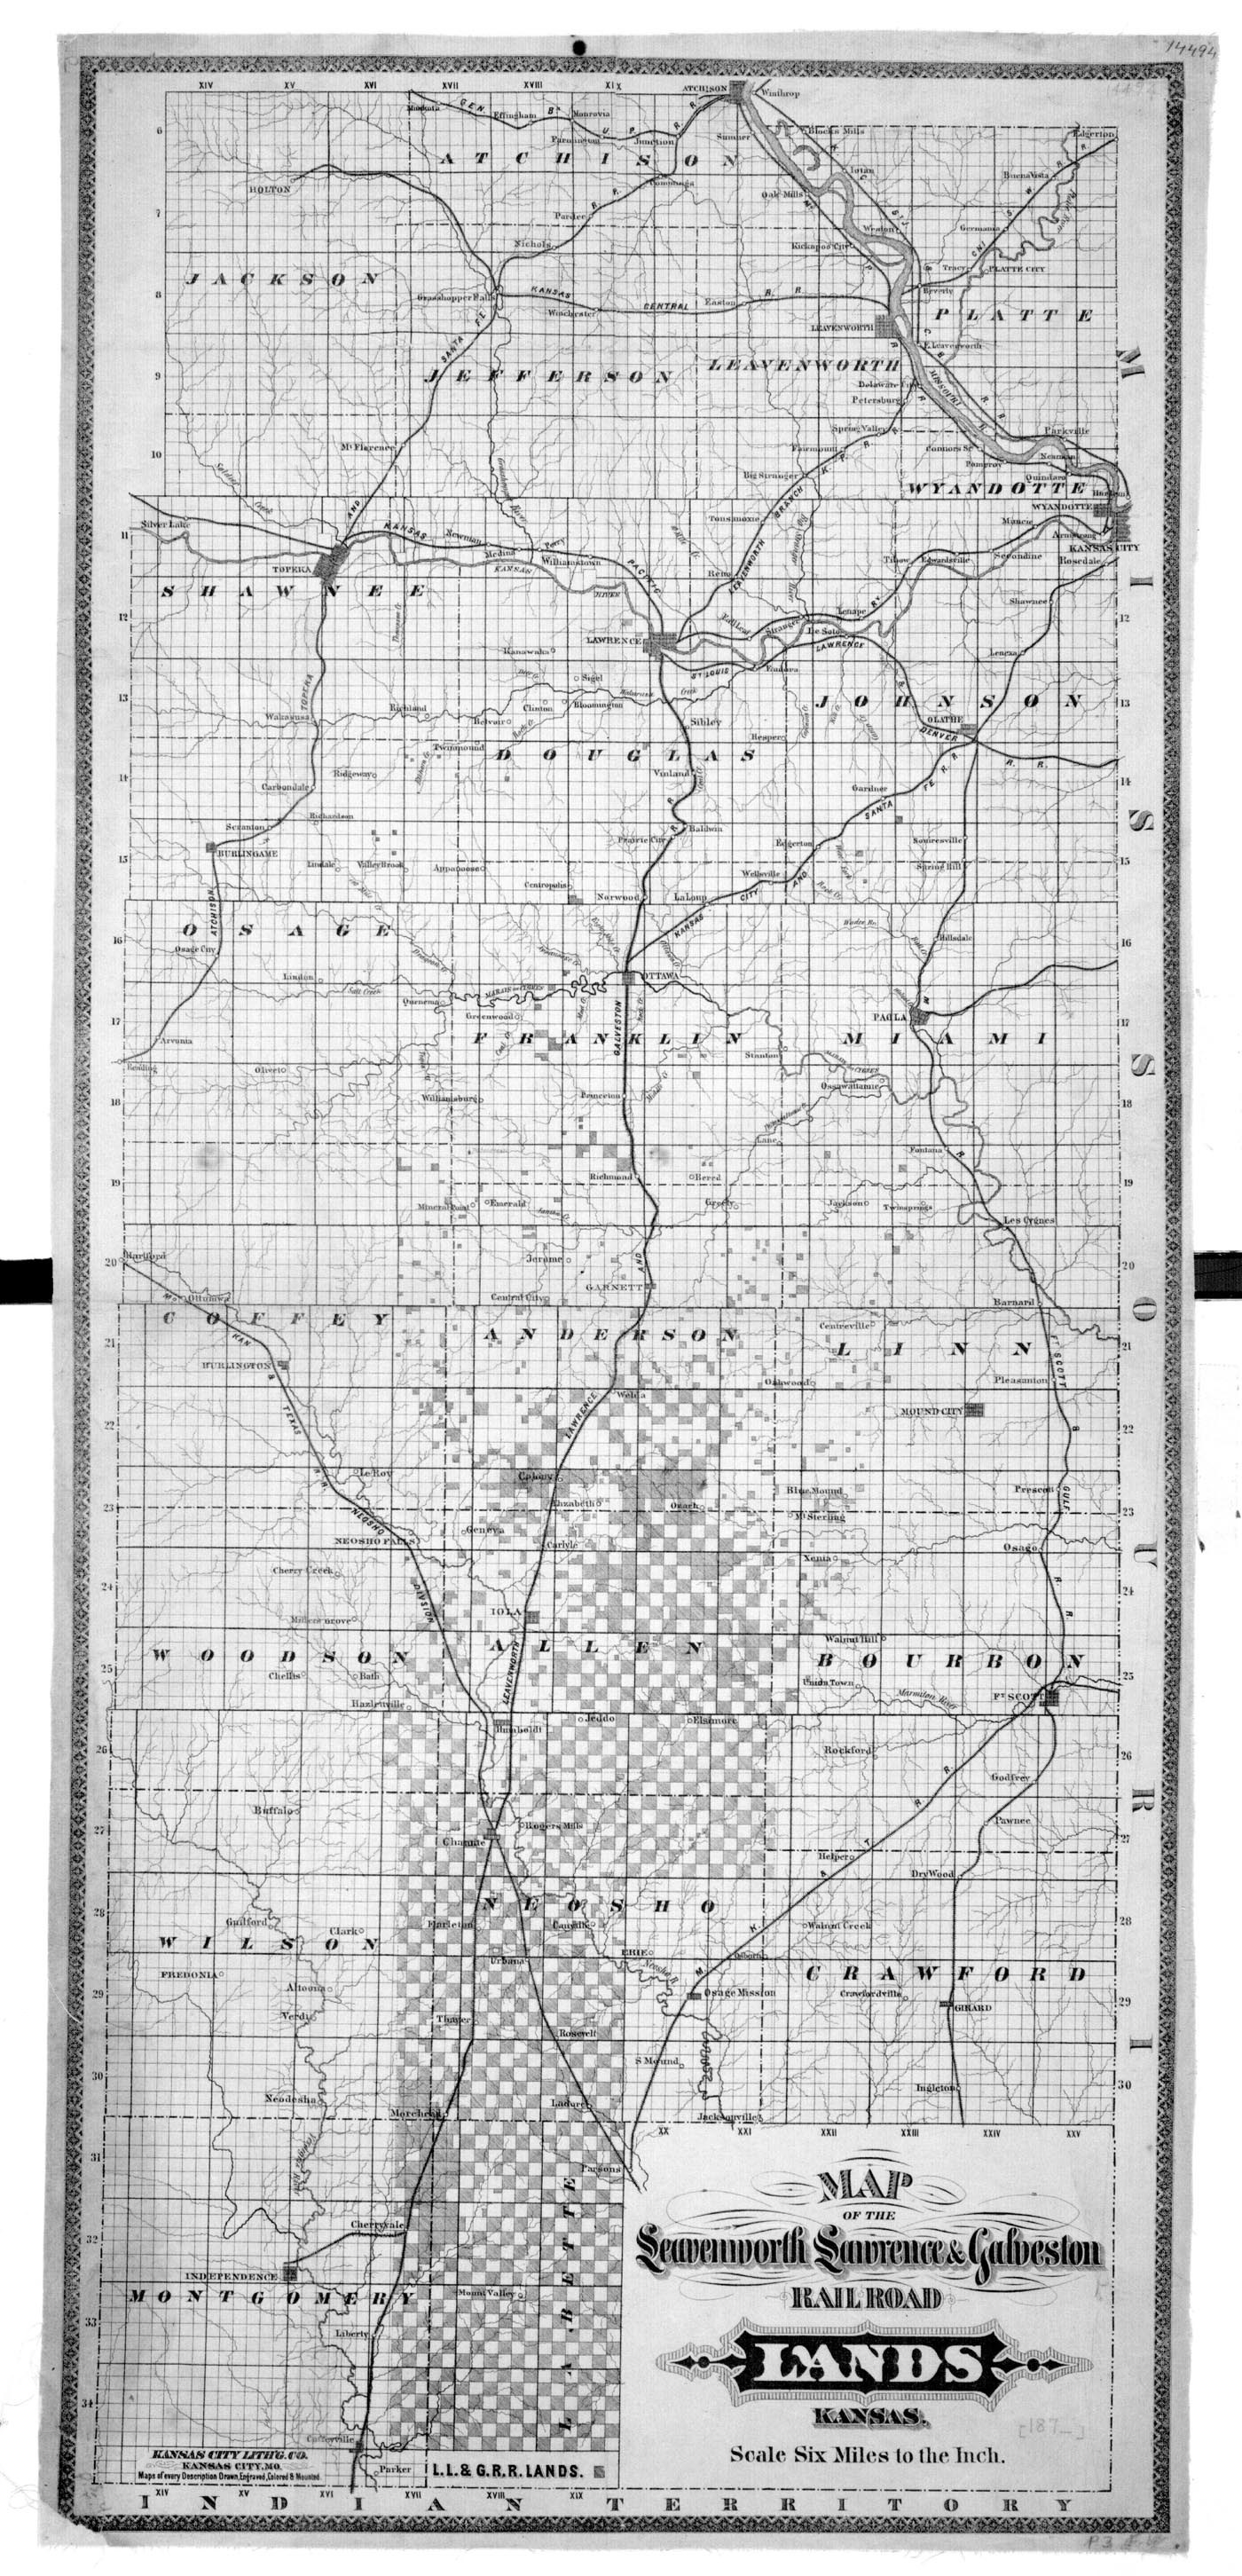 Map of the Leavenworth, Lawrence & Galveston Railroad lands